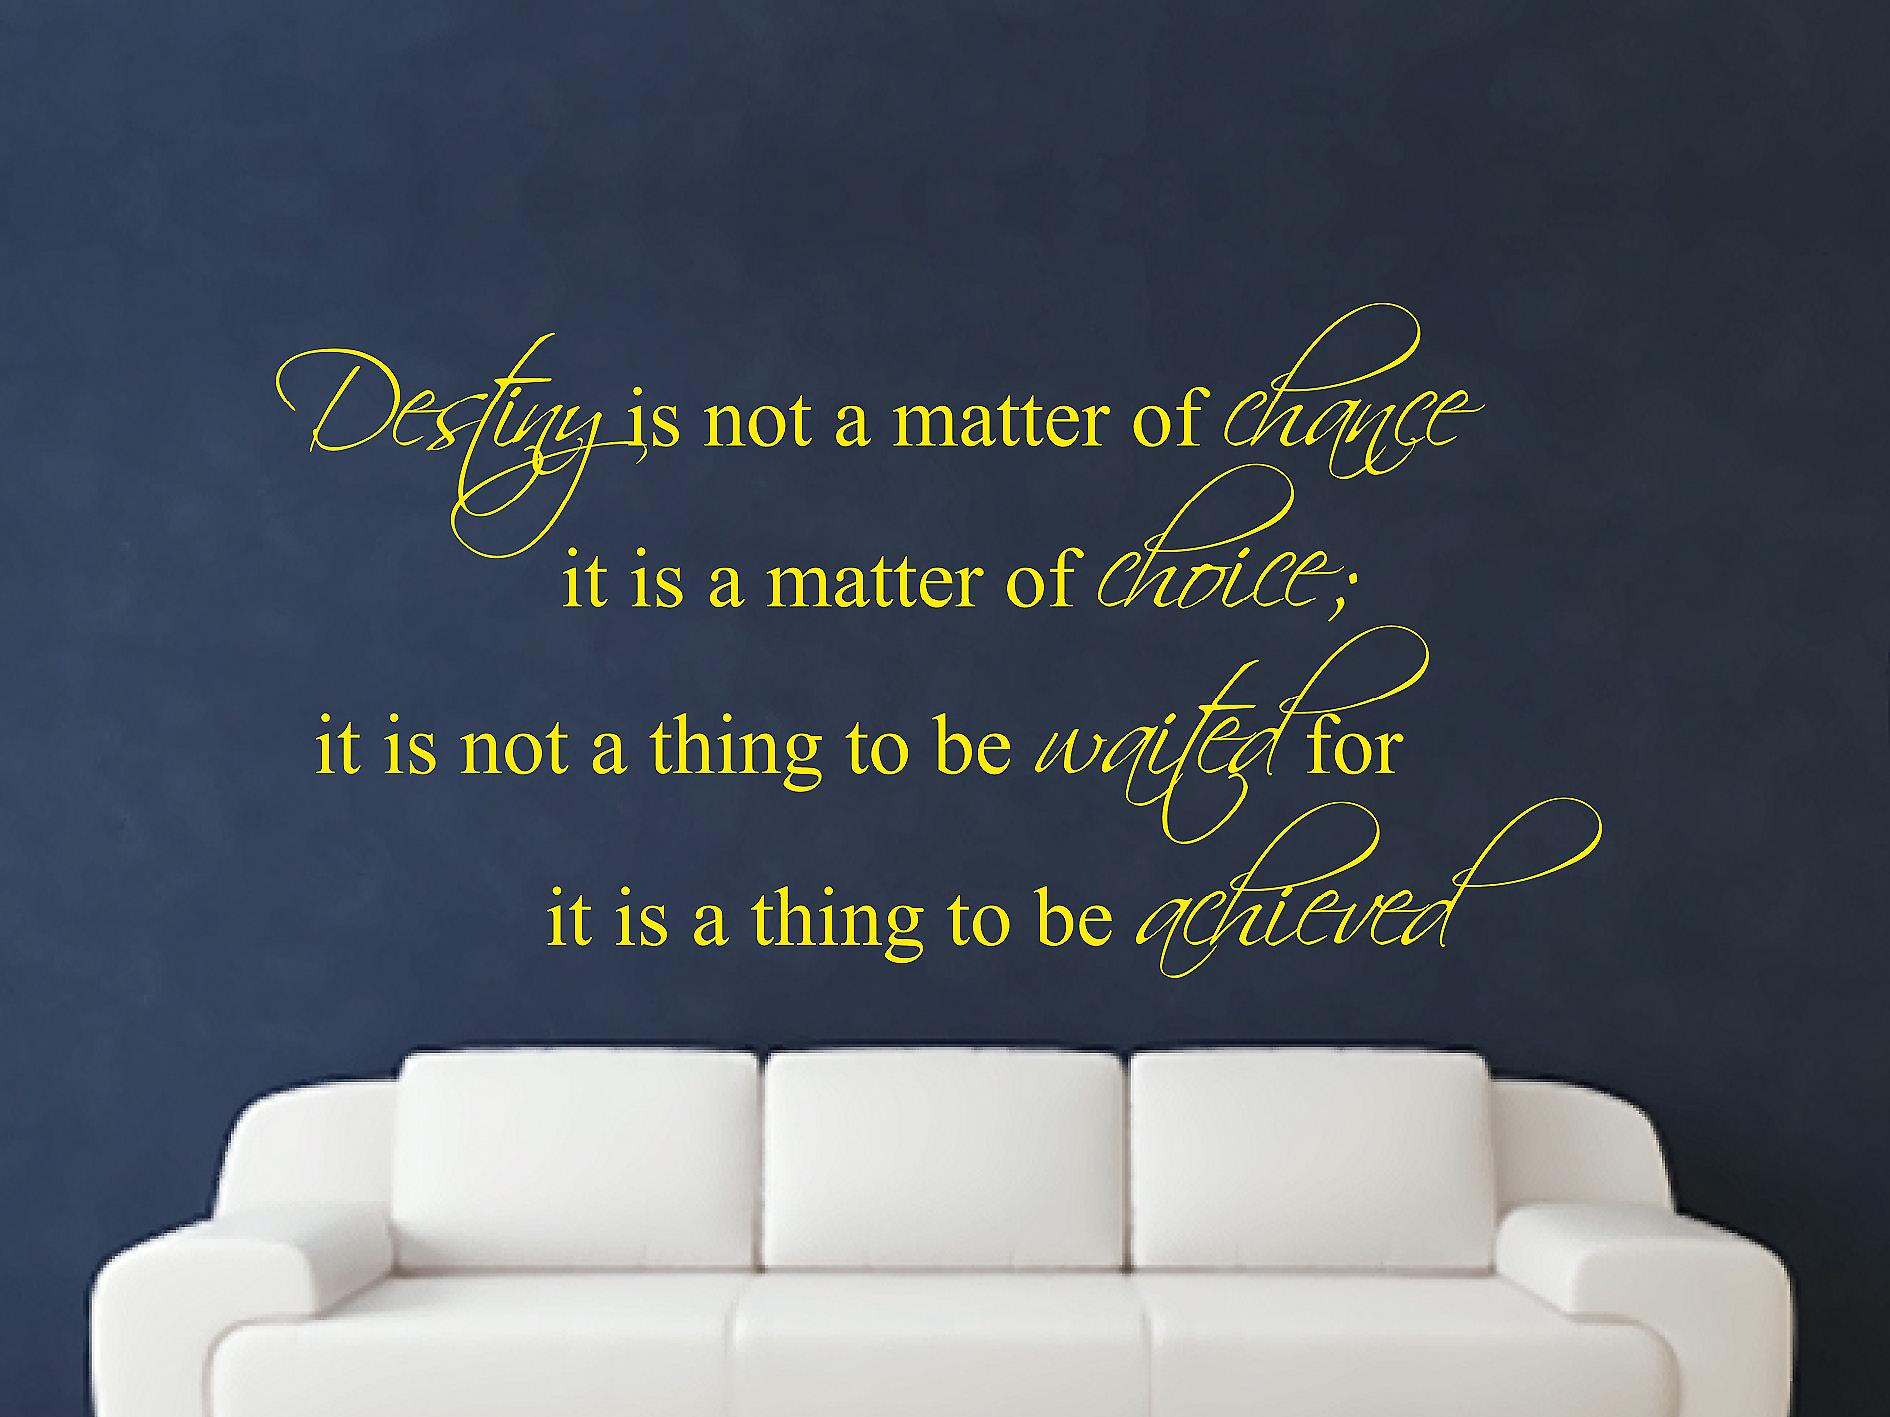 Destiny Is Not A Matter of Chance Wall Art Sticker - Bright Yellow